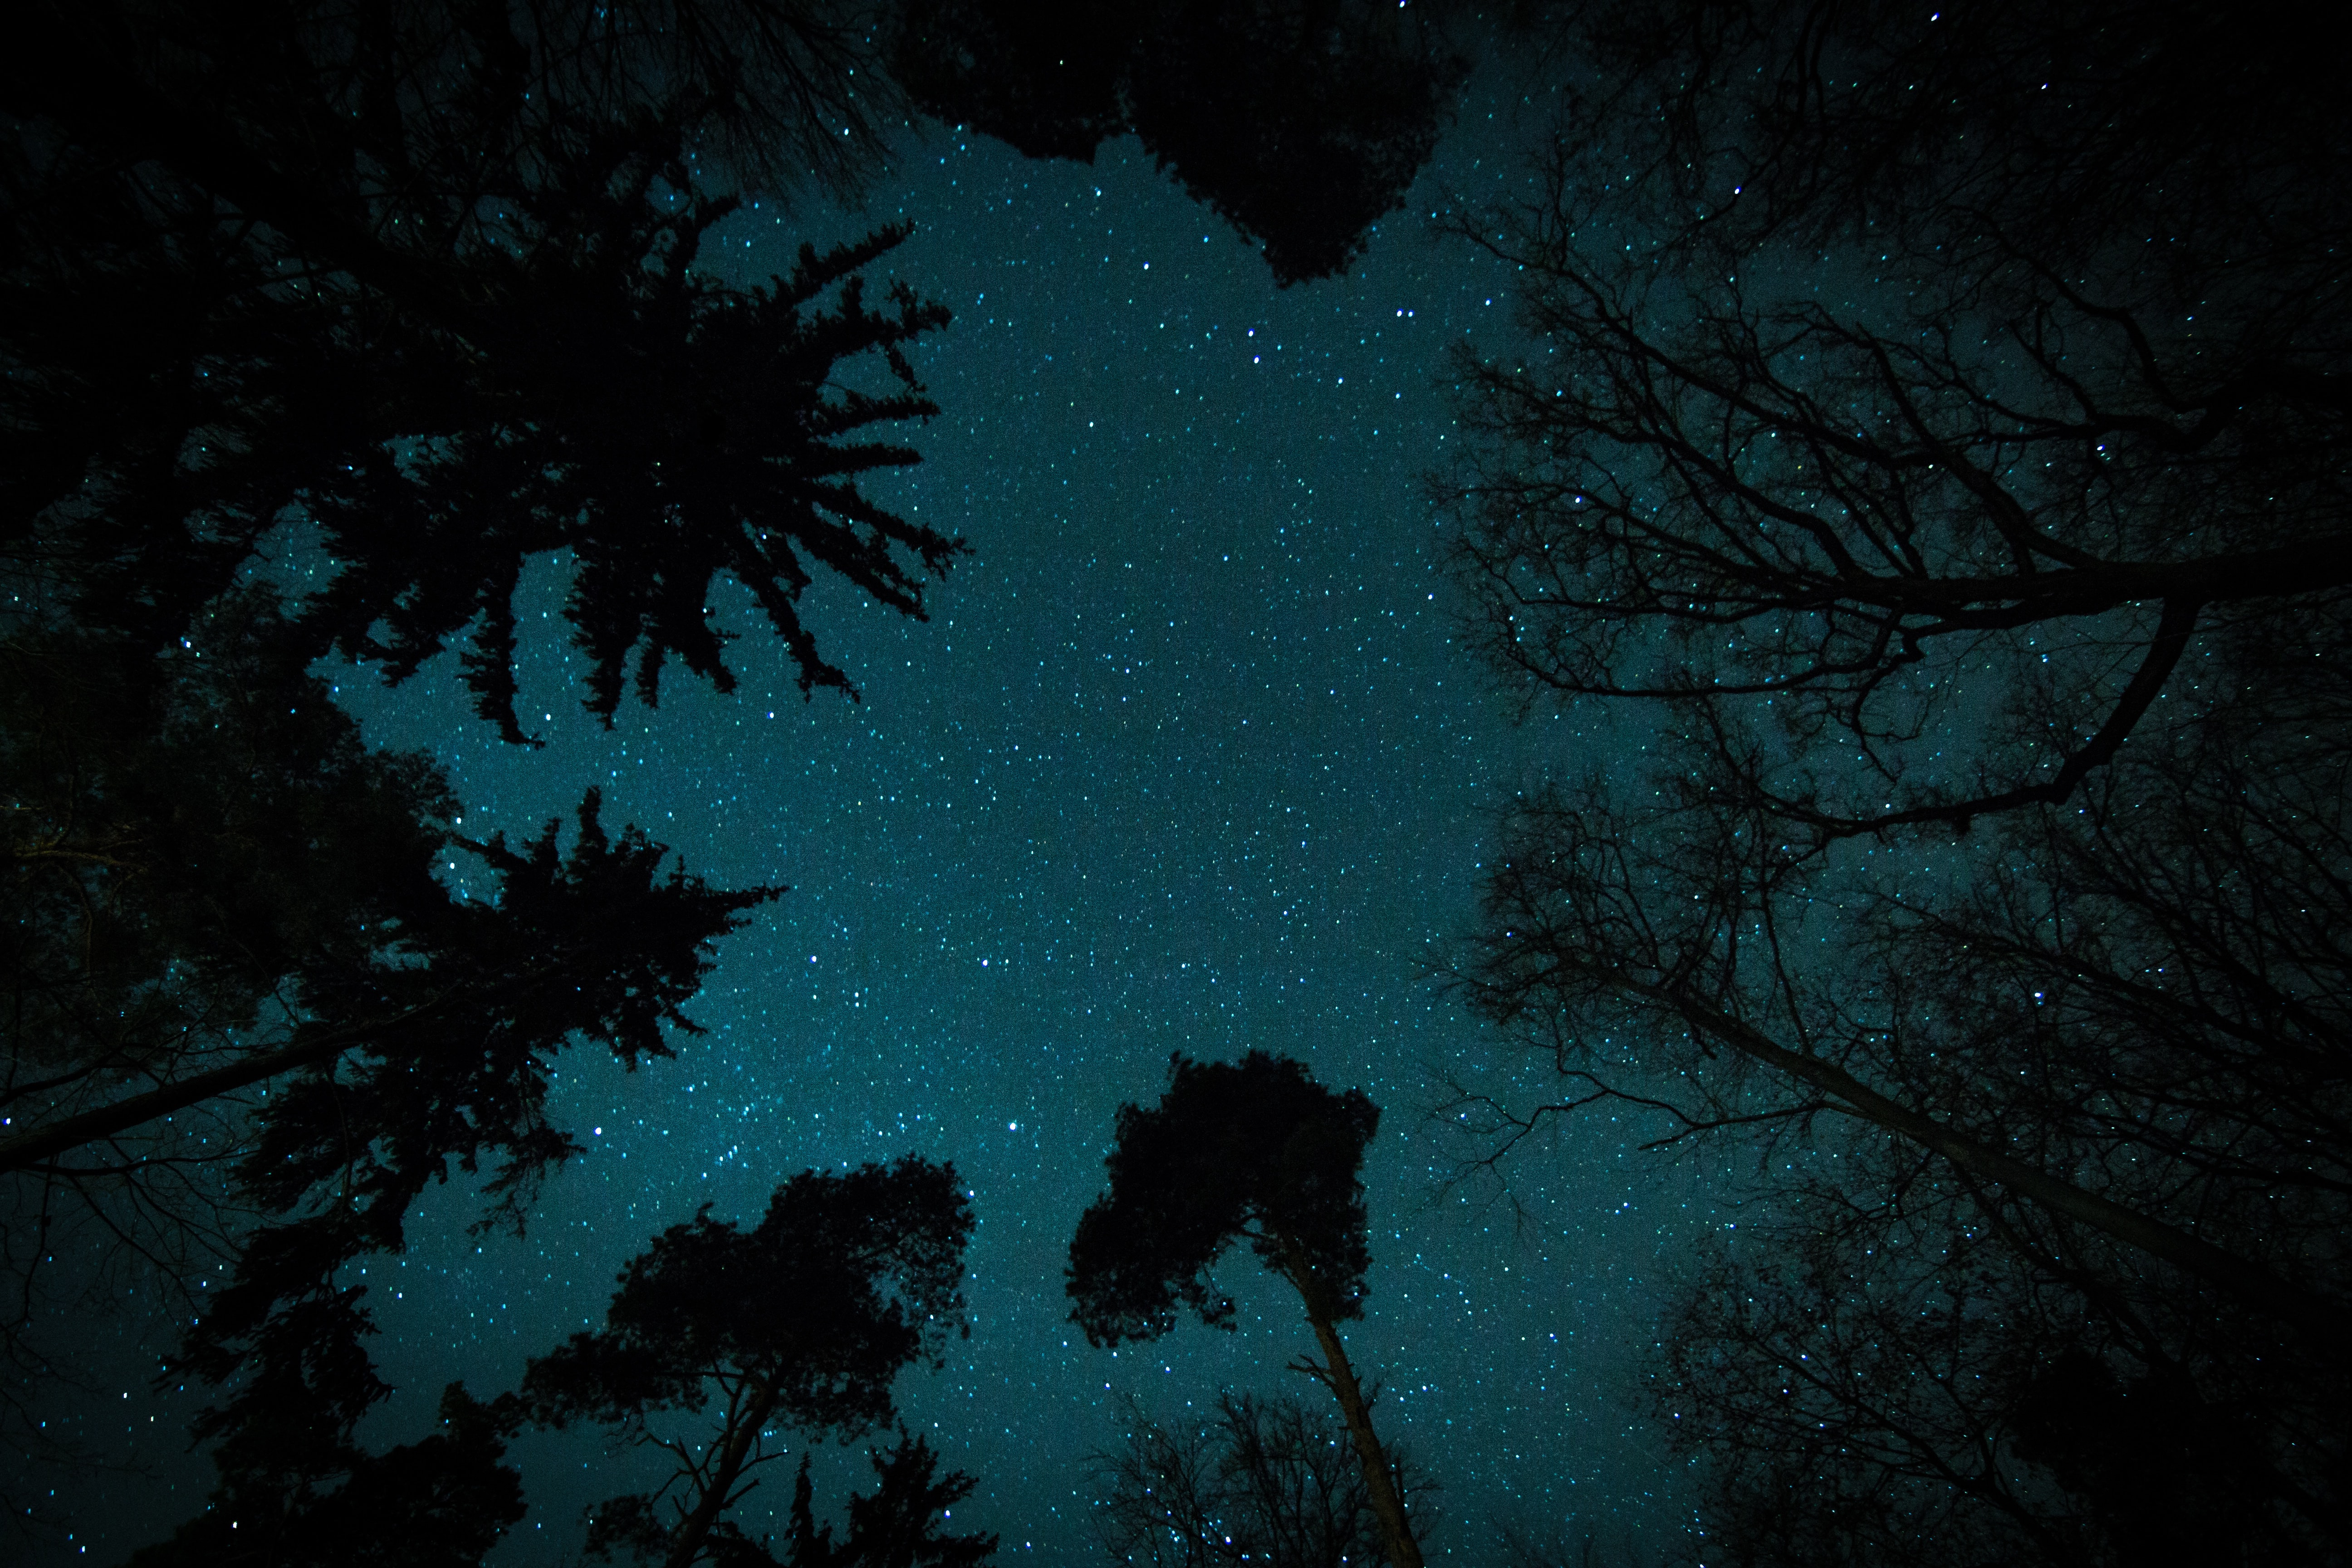 A view of the starry sky at night, straight up, through the silhouette of trees around the edges.